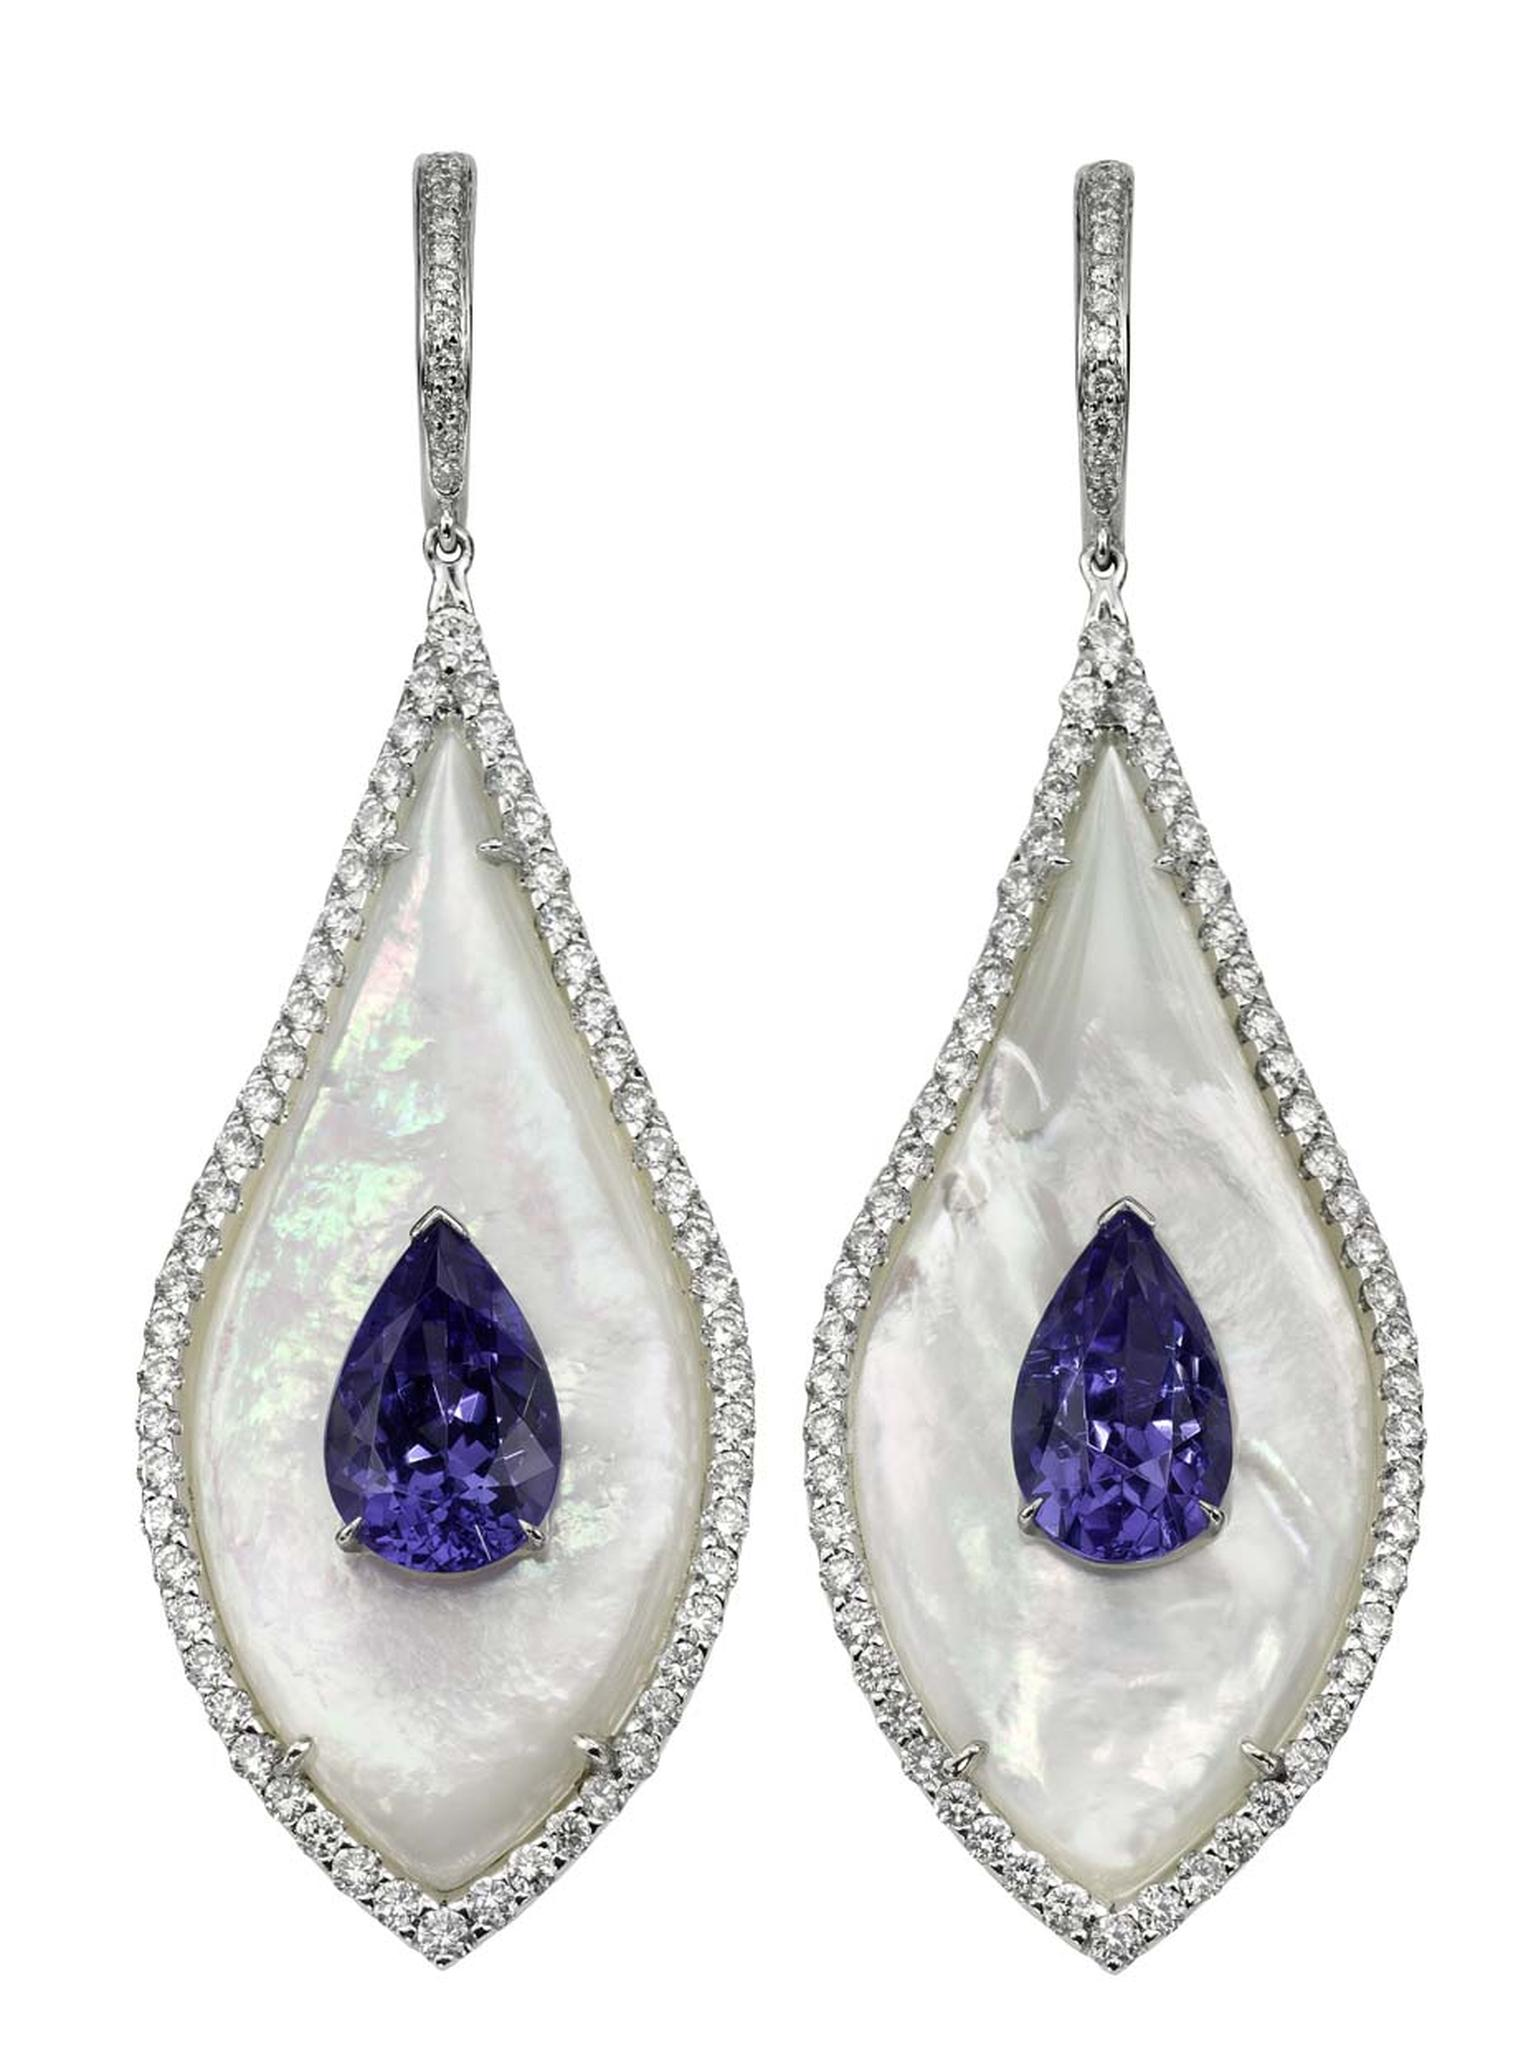 Bogh-Art earrings featuring inlaid pear-shaped tanzanites set into milky white mother of pearl.